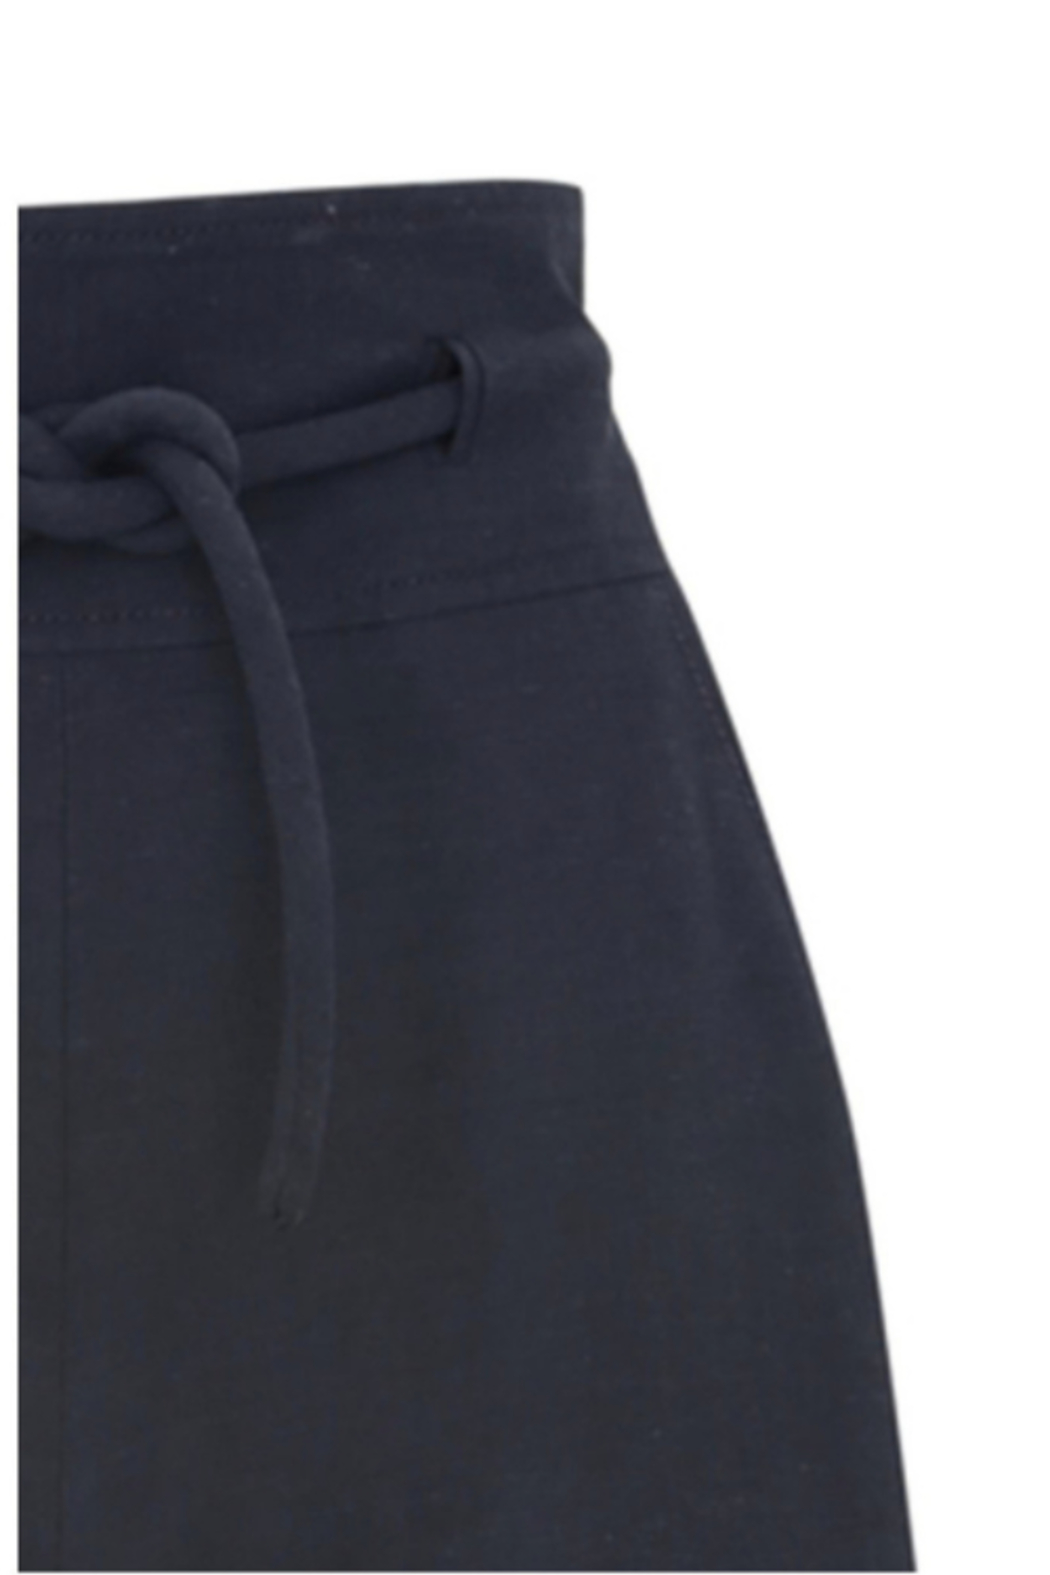 Martin Grant HIGH WAIST WIDE LEG PANT - Side Cropped Image